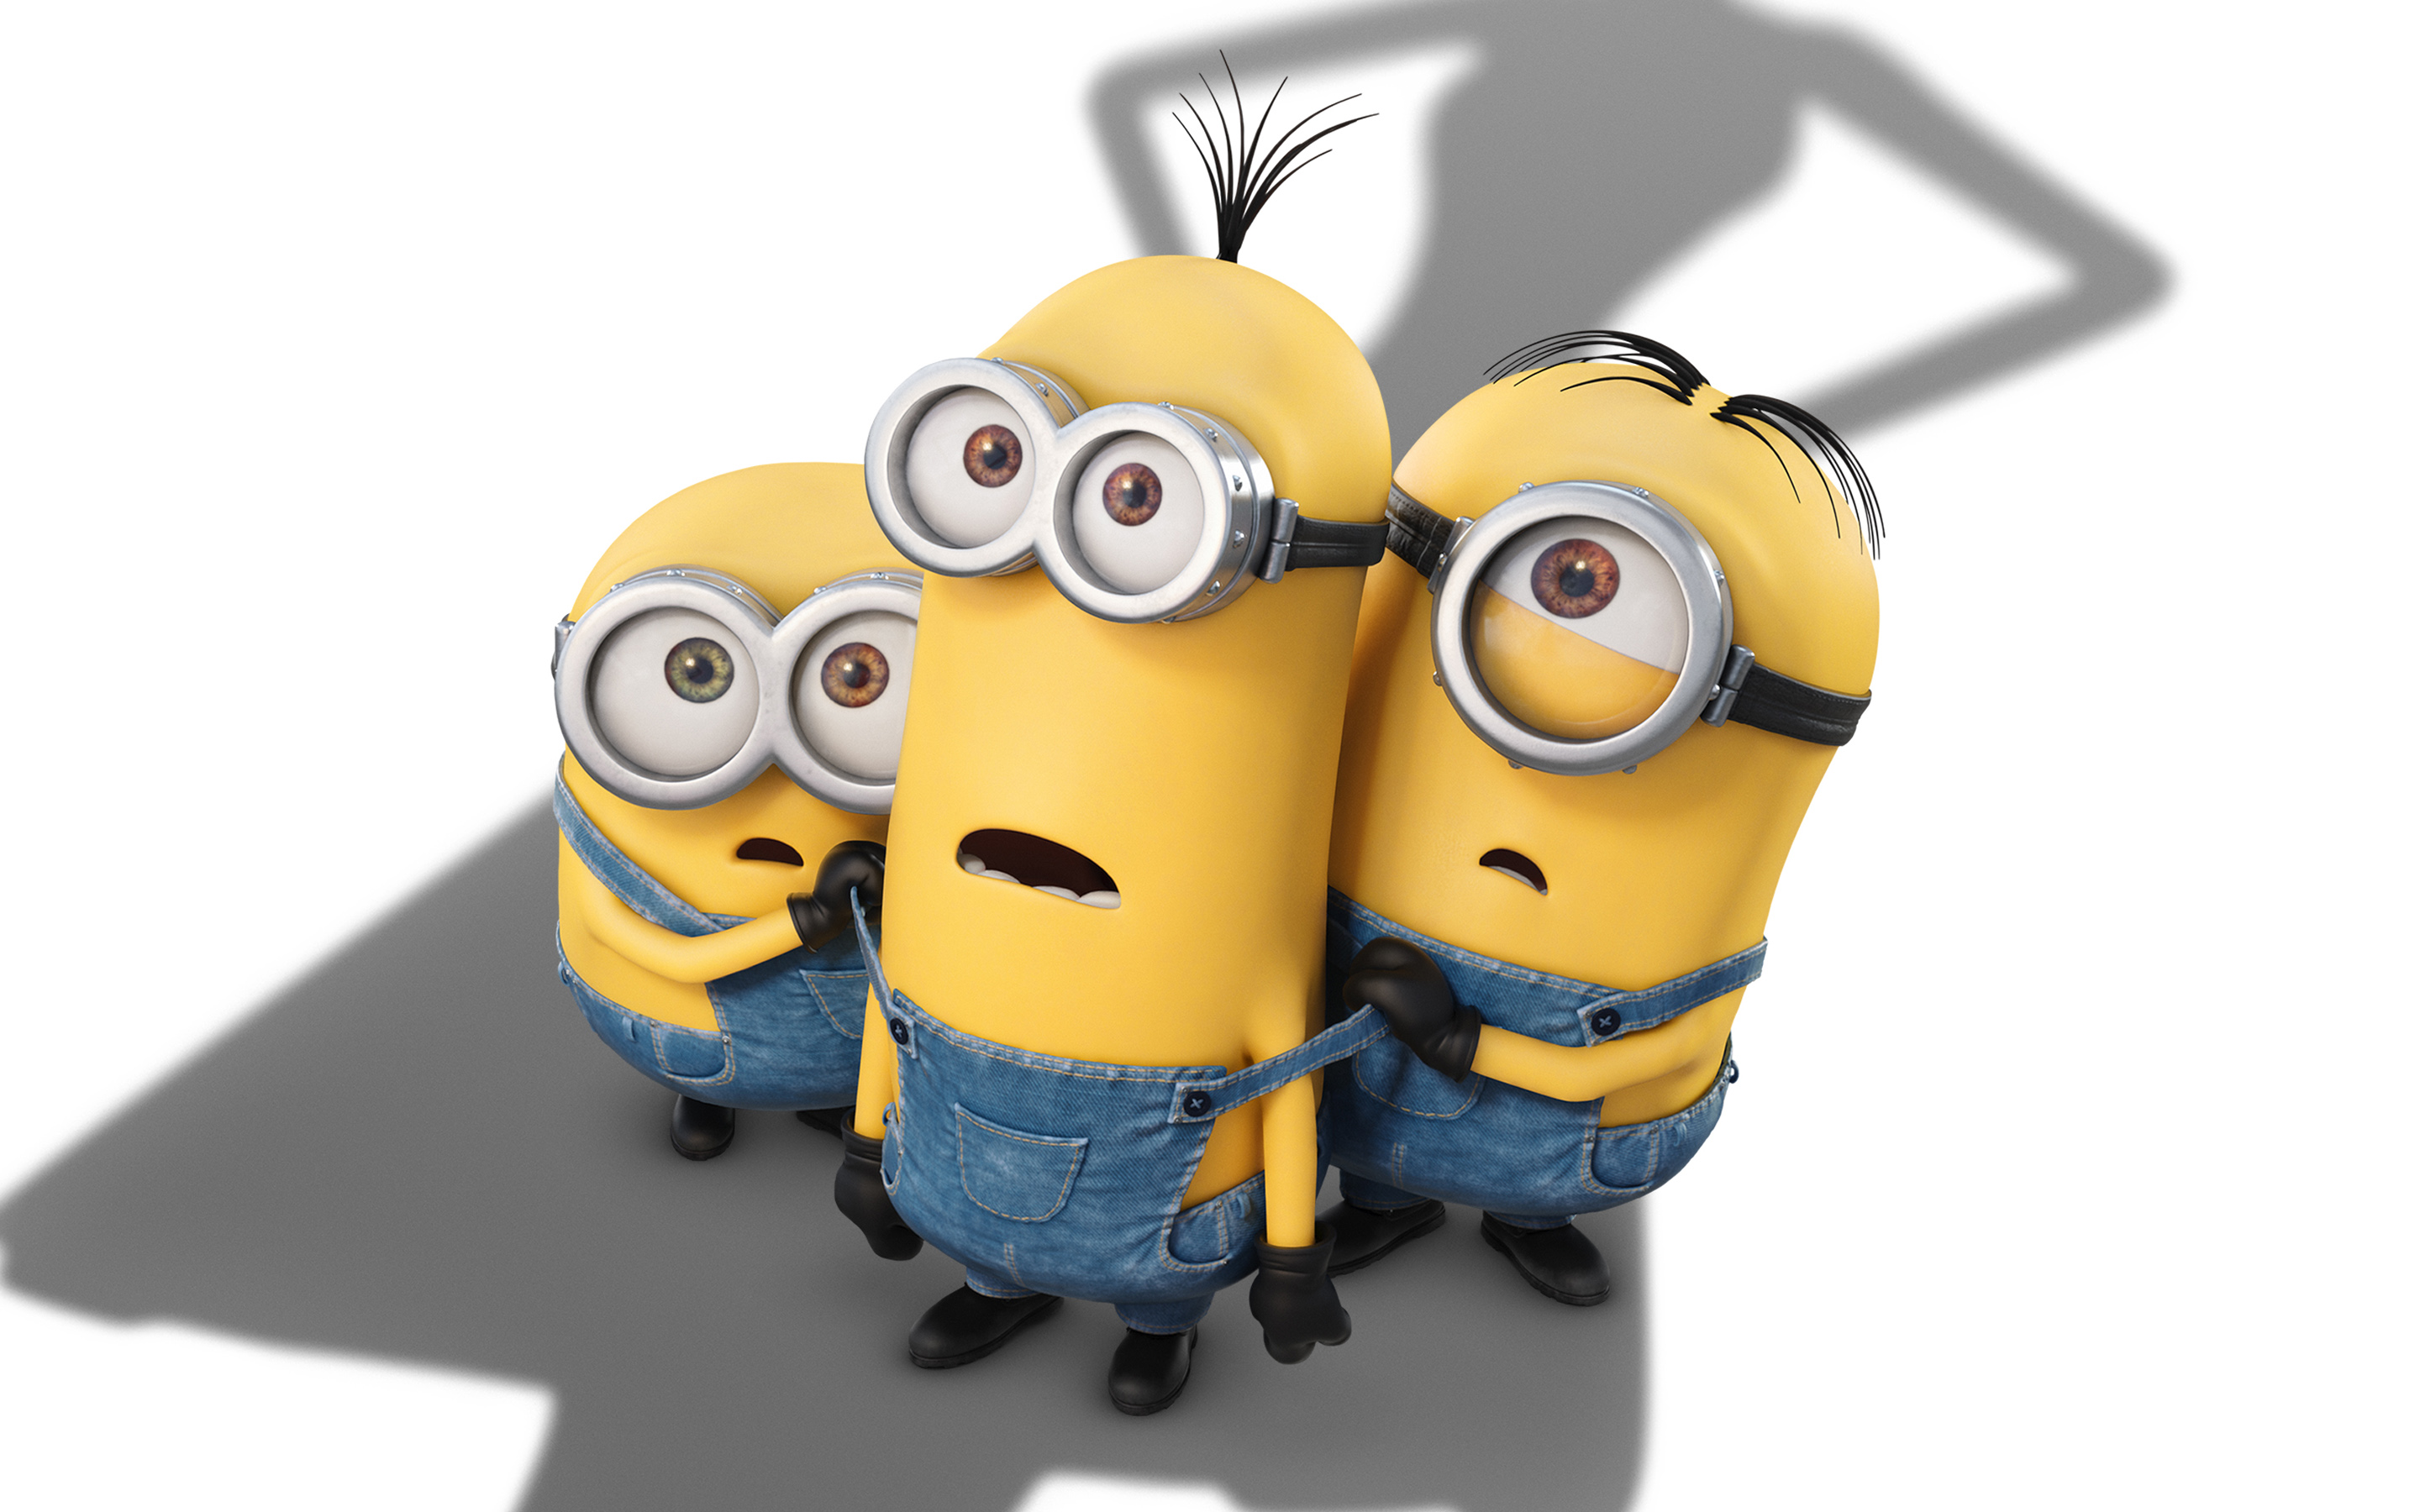 HD Wallpapers 2015 Minions Movie